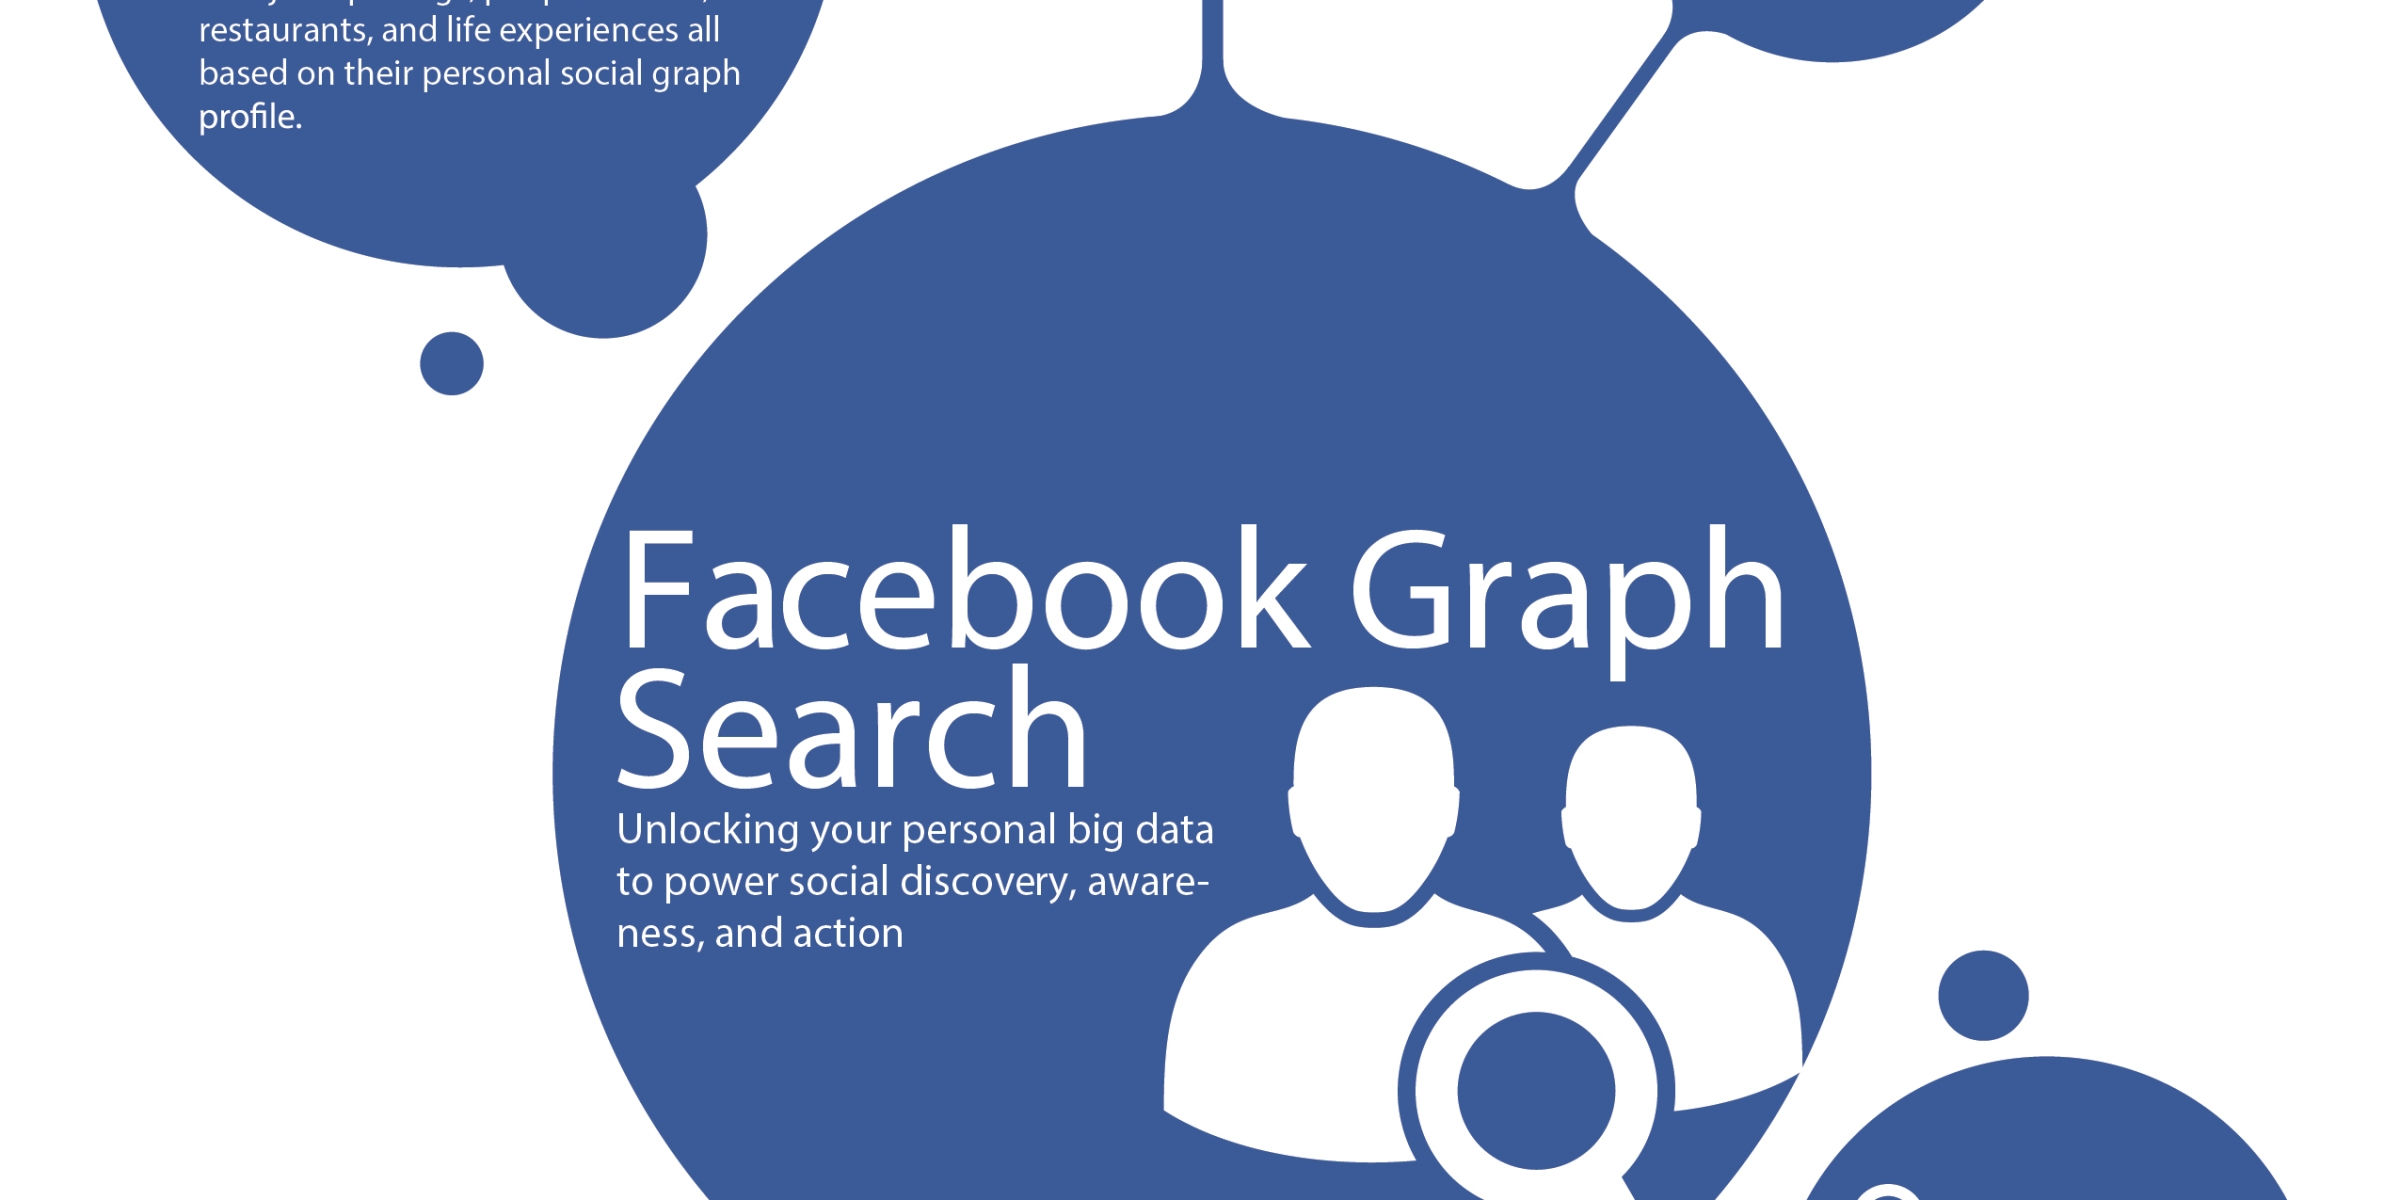 Facebook Graph Search Just Made Your Job Search More Interesting | Pb